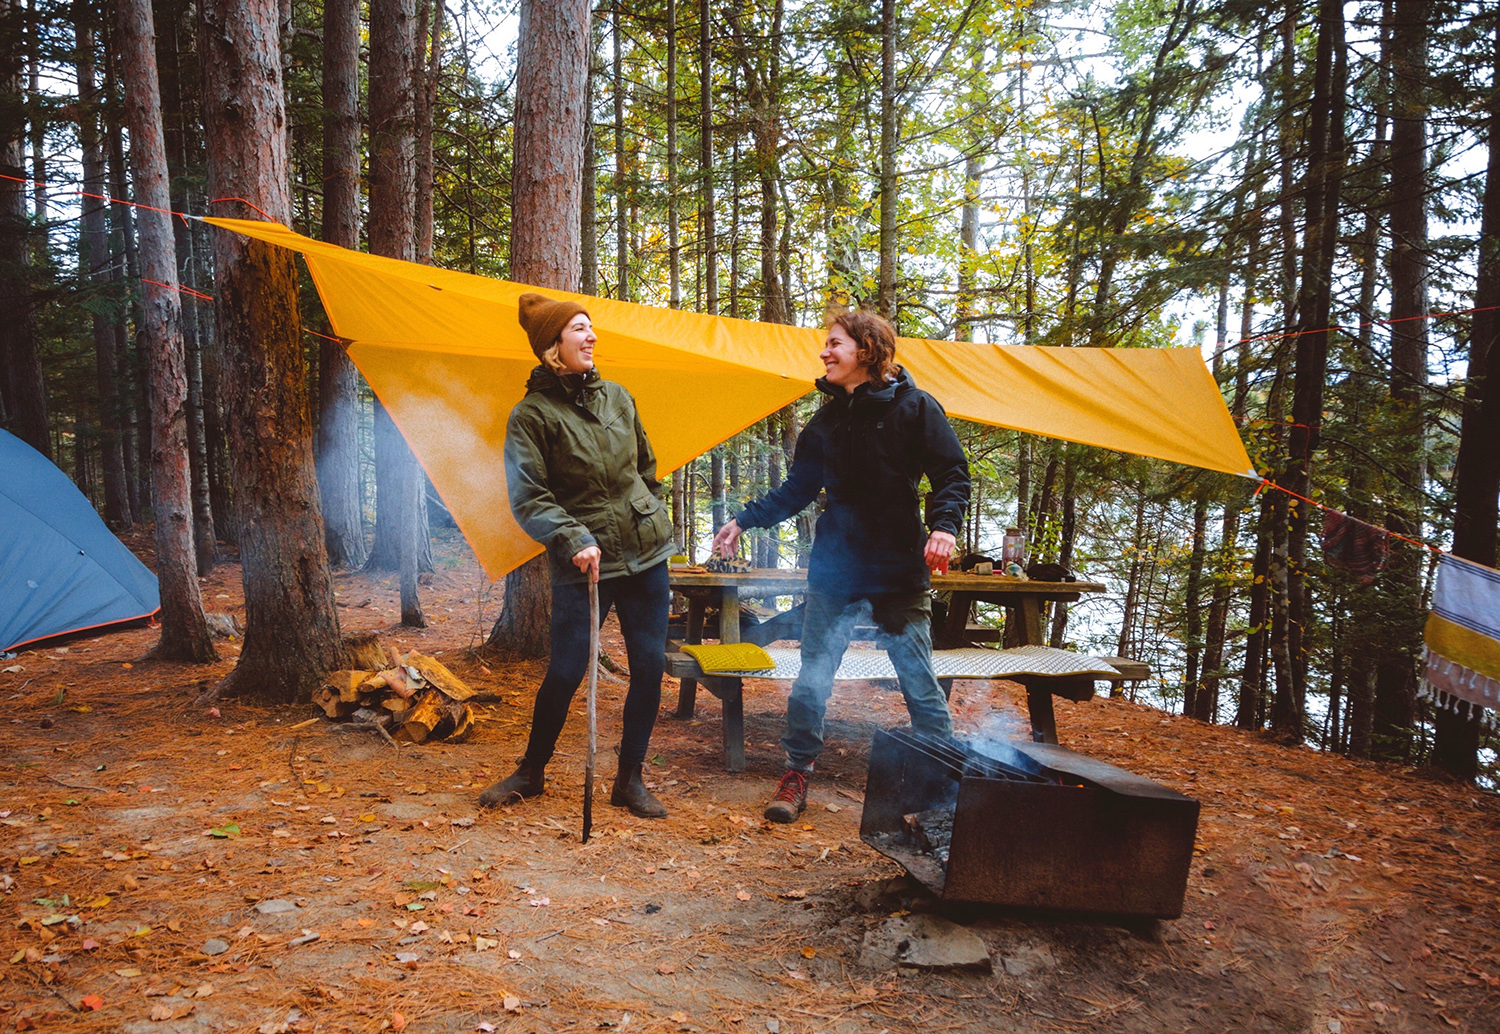 2 women are chatting and laughing at their campsite